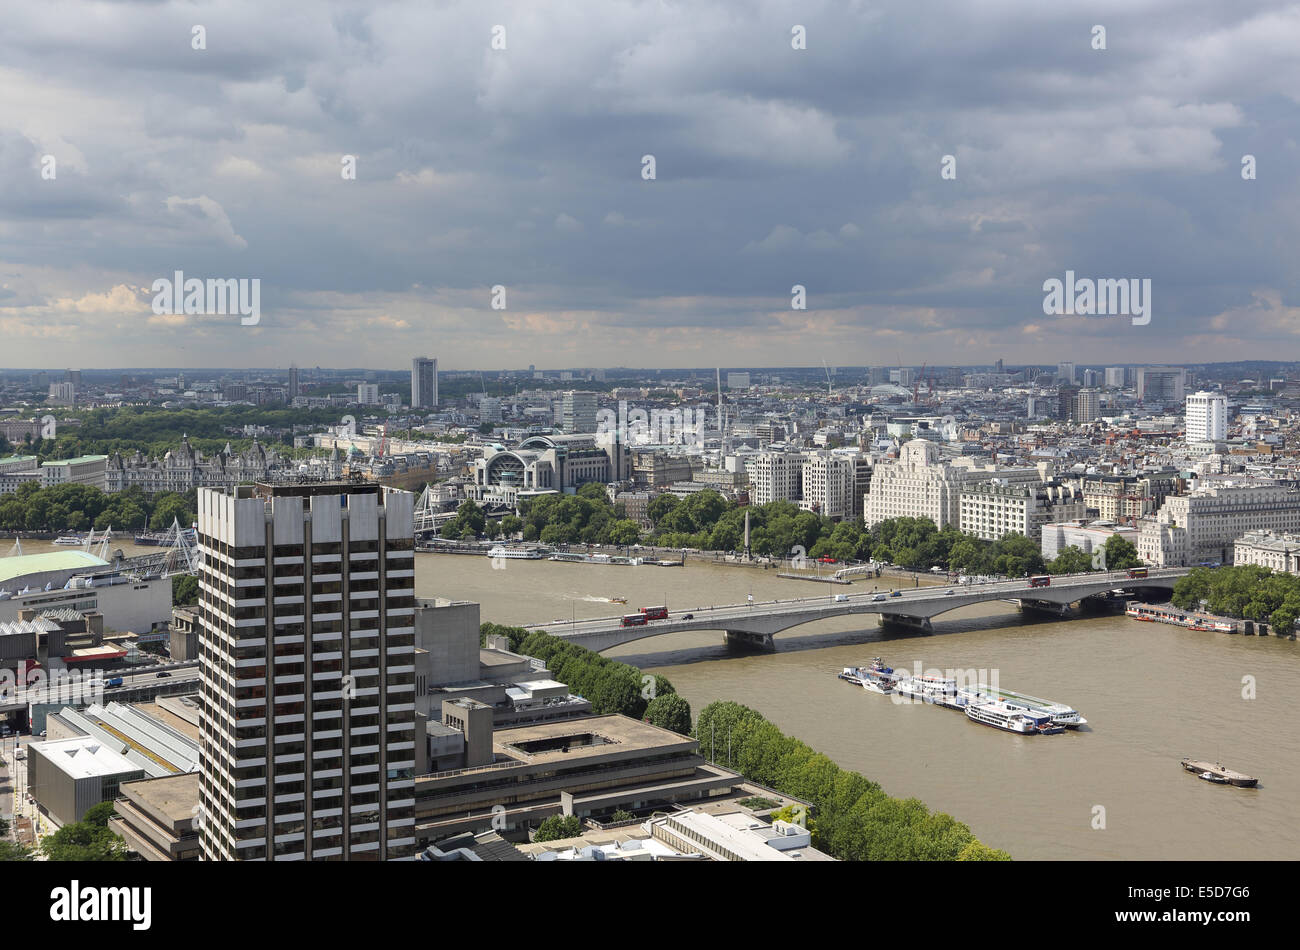 High level view of the River Thames and Waterloo Bridge from Southbank Tower. ITV Studios Tower to left. - Stock Image